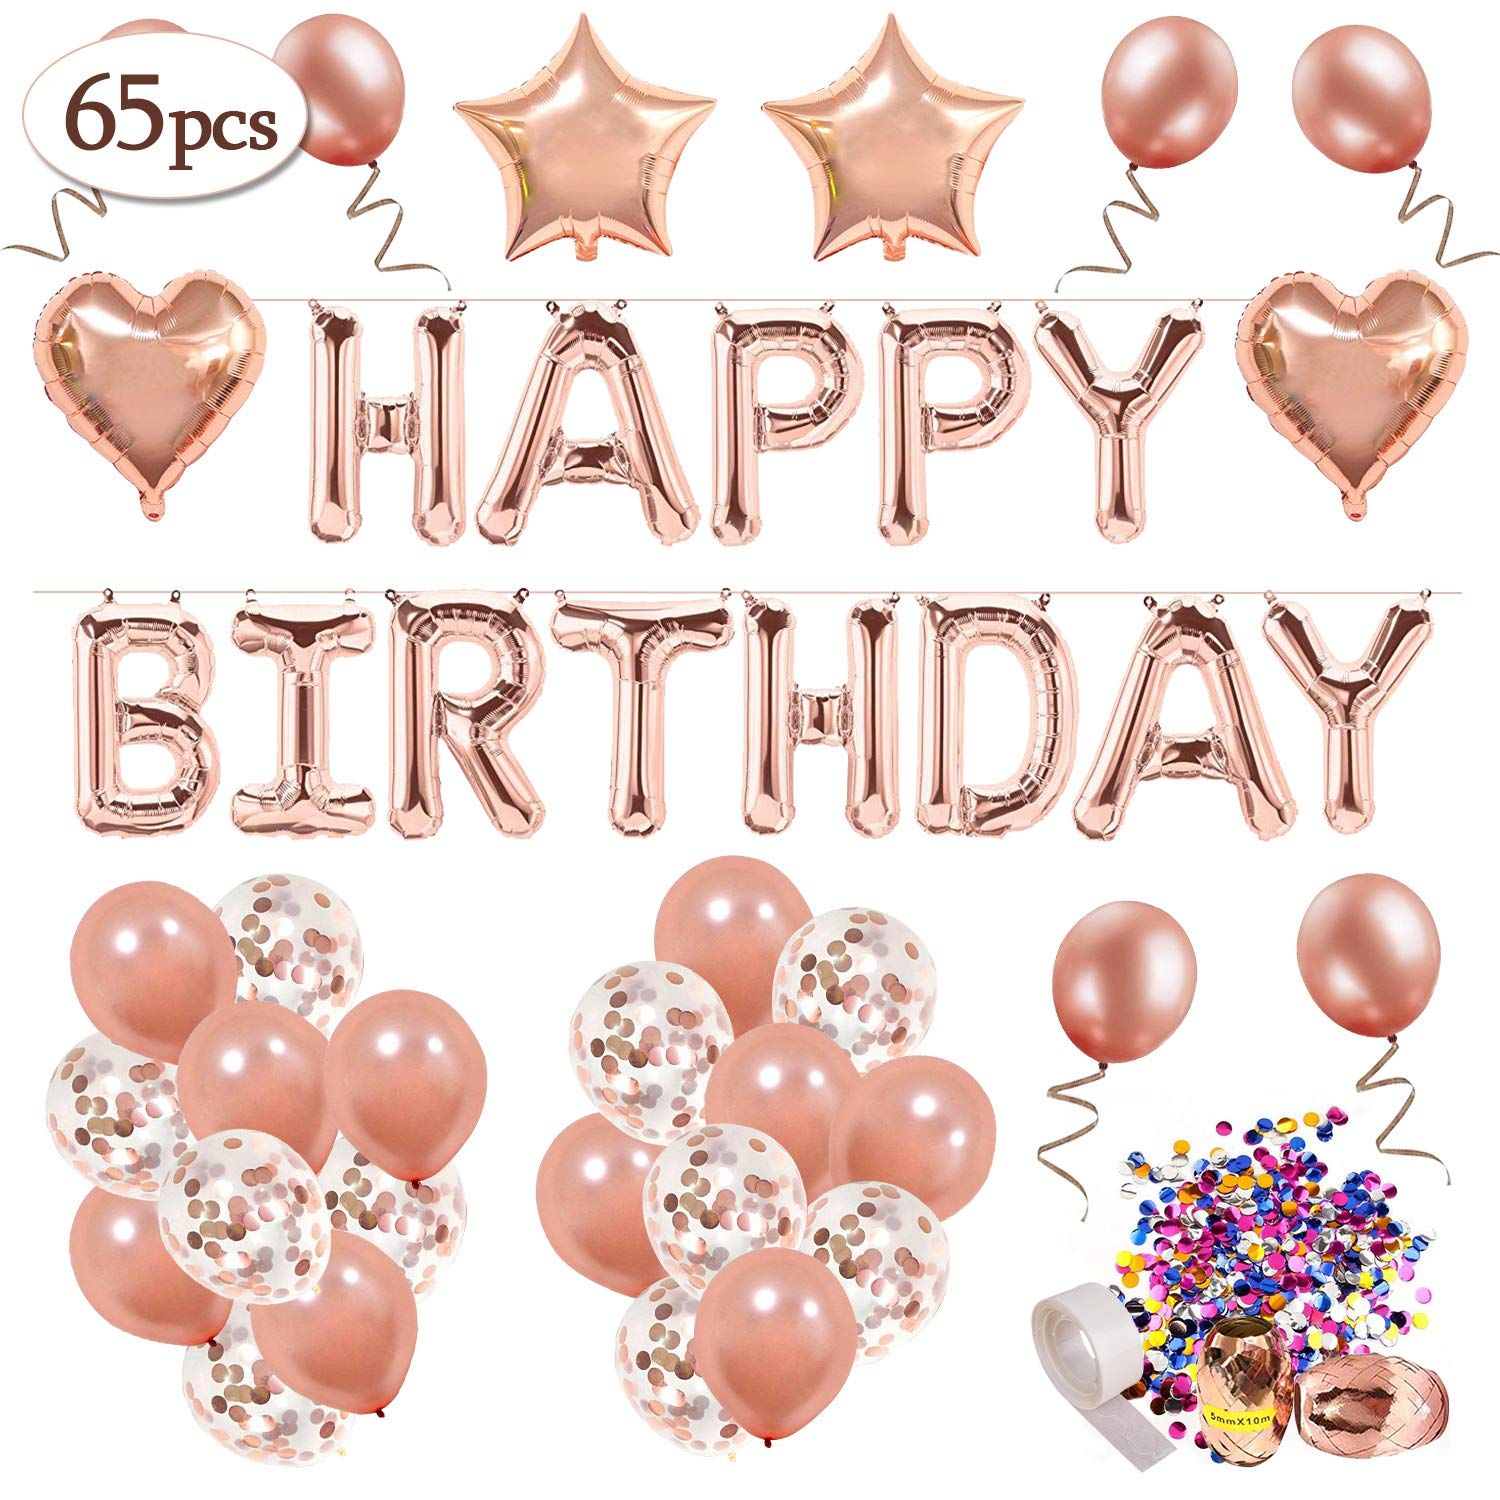 Rose Gold Happy Birthday Decorations,MMTX Happy Birthday Banner Confetti Balloon For Girls and Women with 32 pcs Rose Gold Latex Balloons 12pcs Rosegold Confetti Balloons 4pcs Foil Balloons shaped Heart Star Party Supplies